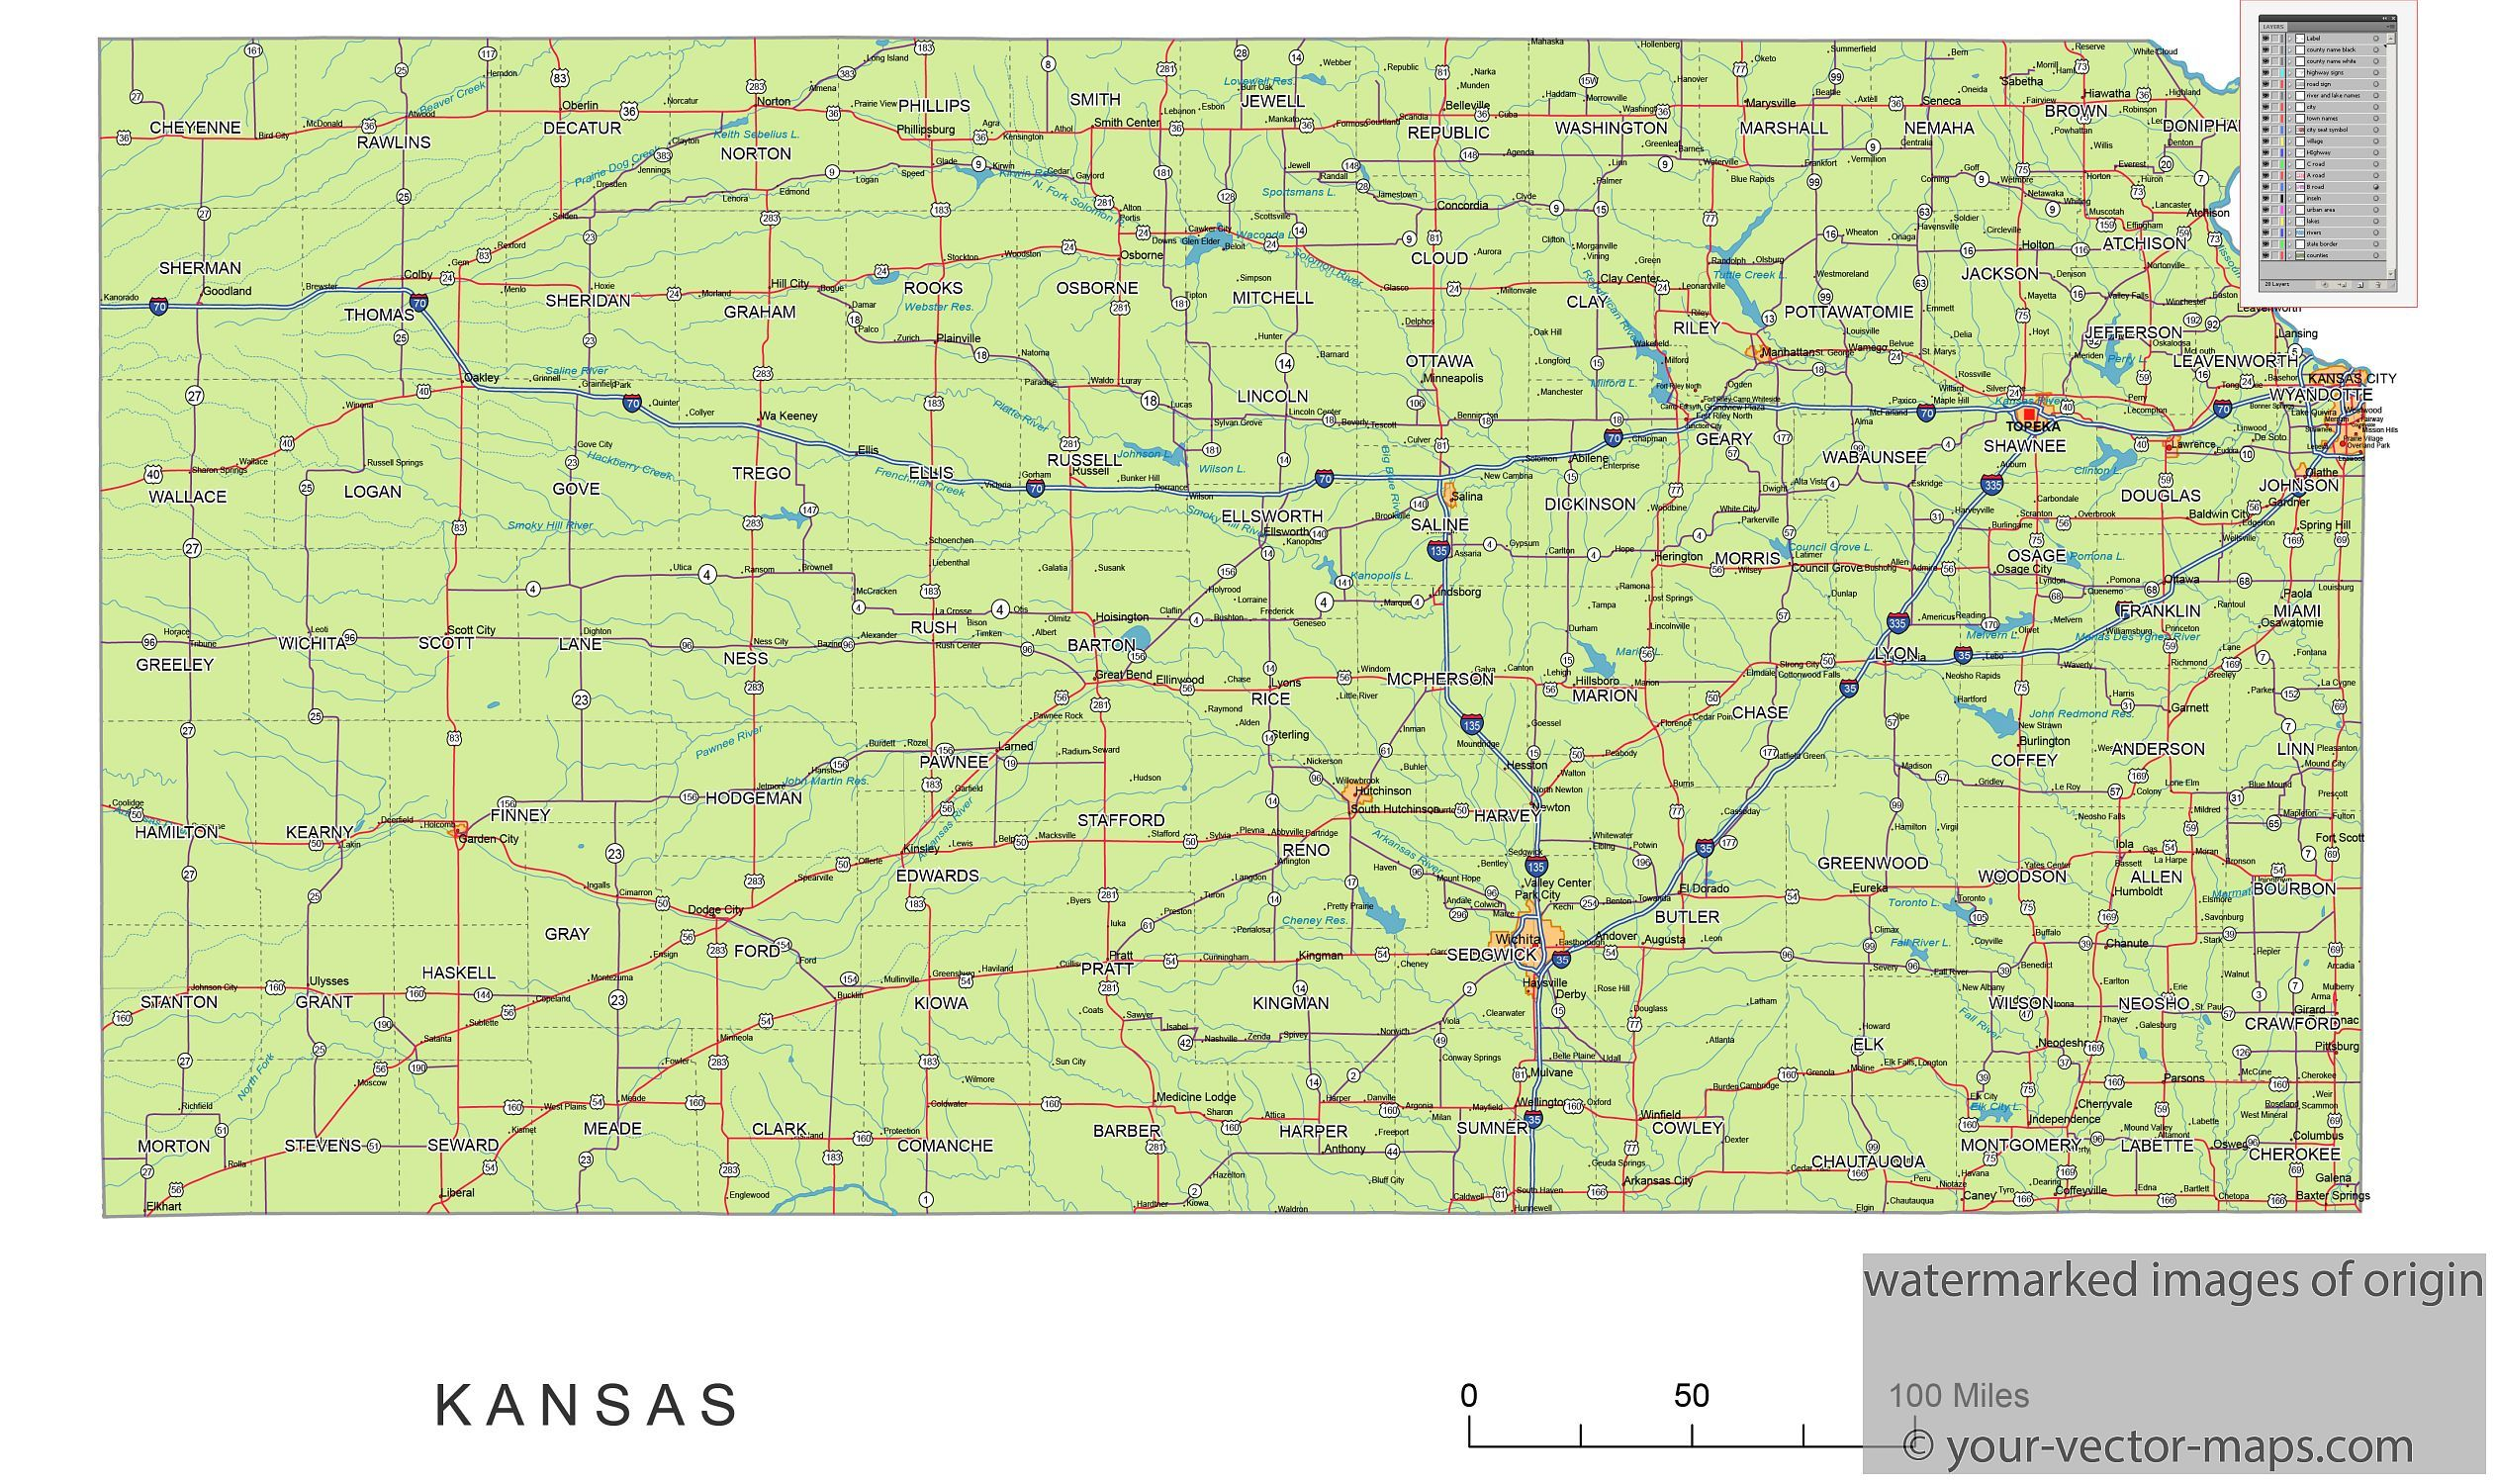 Kansas state route network map. Kansas highways map. Cities of ... on kansas state map postcard, kansas main cities, kansas counties and cities list, kansas state major cities, kansas map with all cities, state of kansas cities, alabama county map of counties and cities, kansas with capital, va maps with counties and cities, kansas counties and county seats, printable kansas map with cities, ks map with cities, kansas map with all counties, kansas information, kansas state product map, kansas county plat maps, kansas map with cities only, kansas county map with cities, kansas state map kansas,